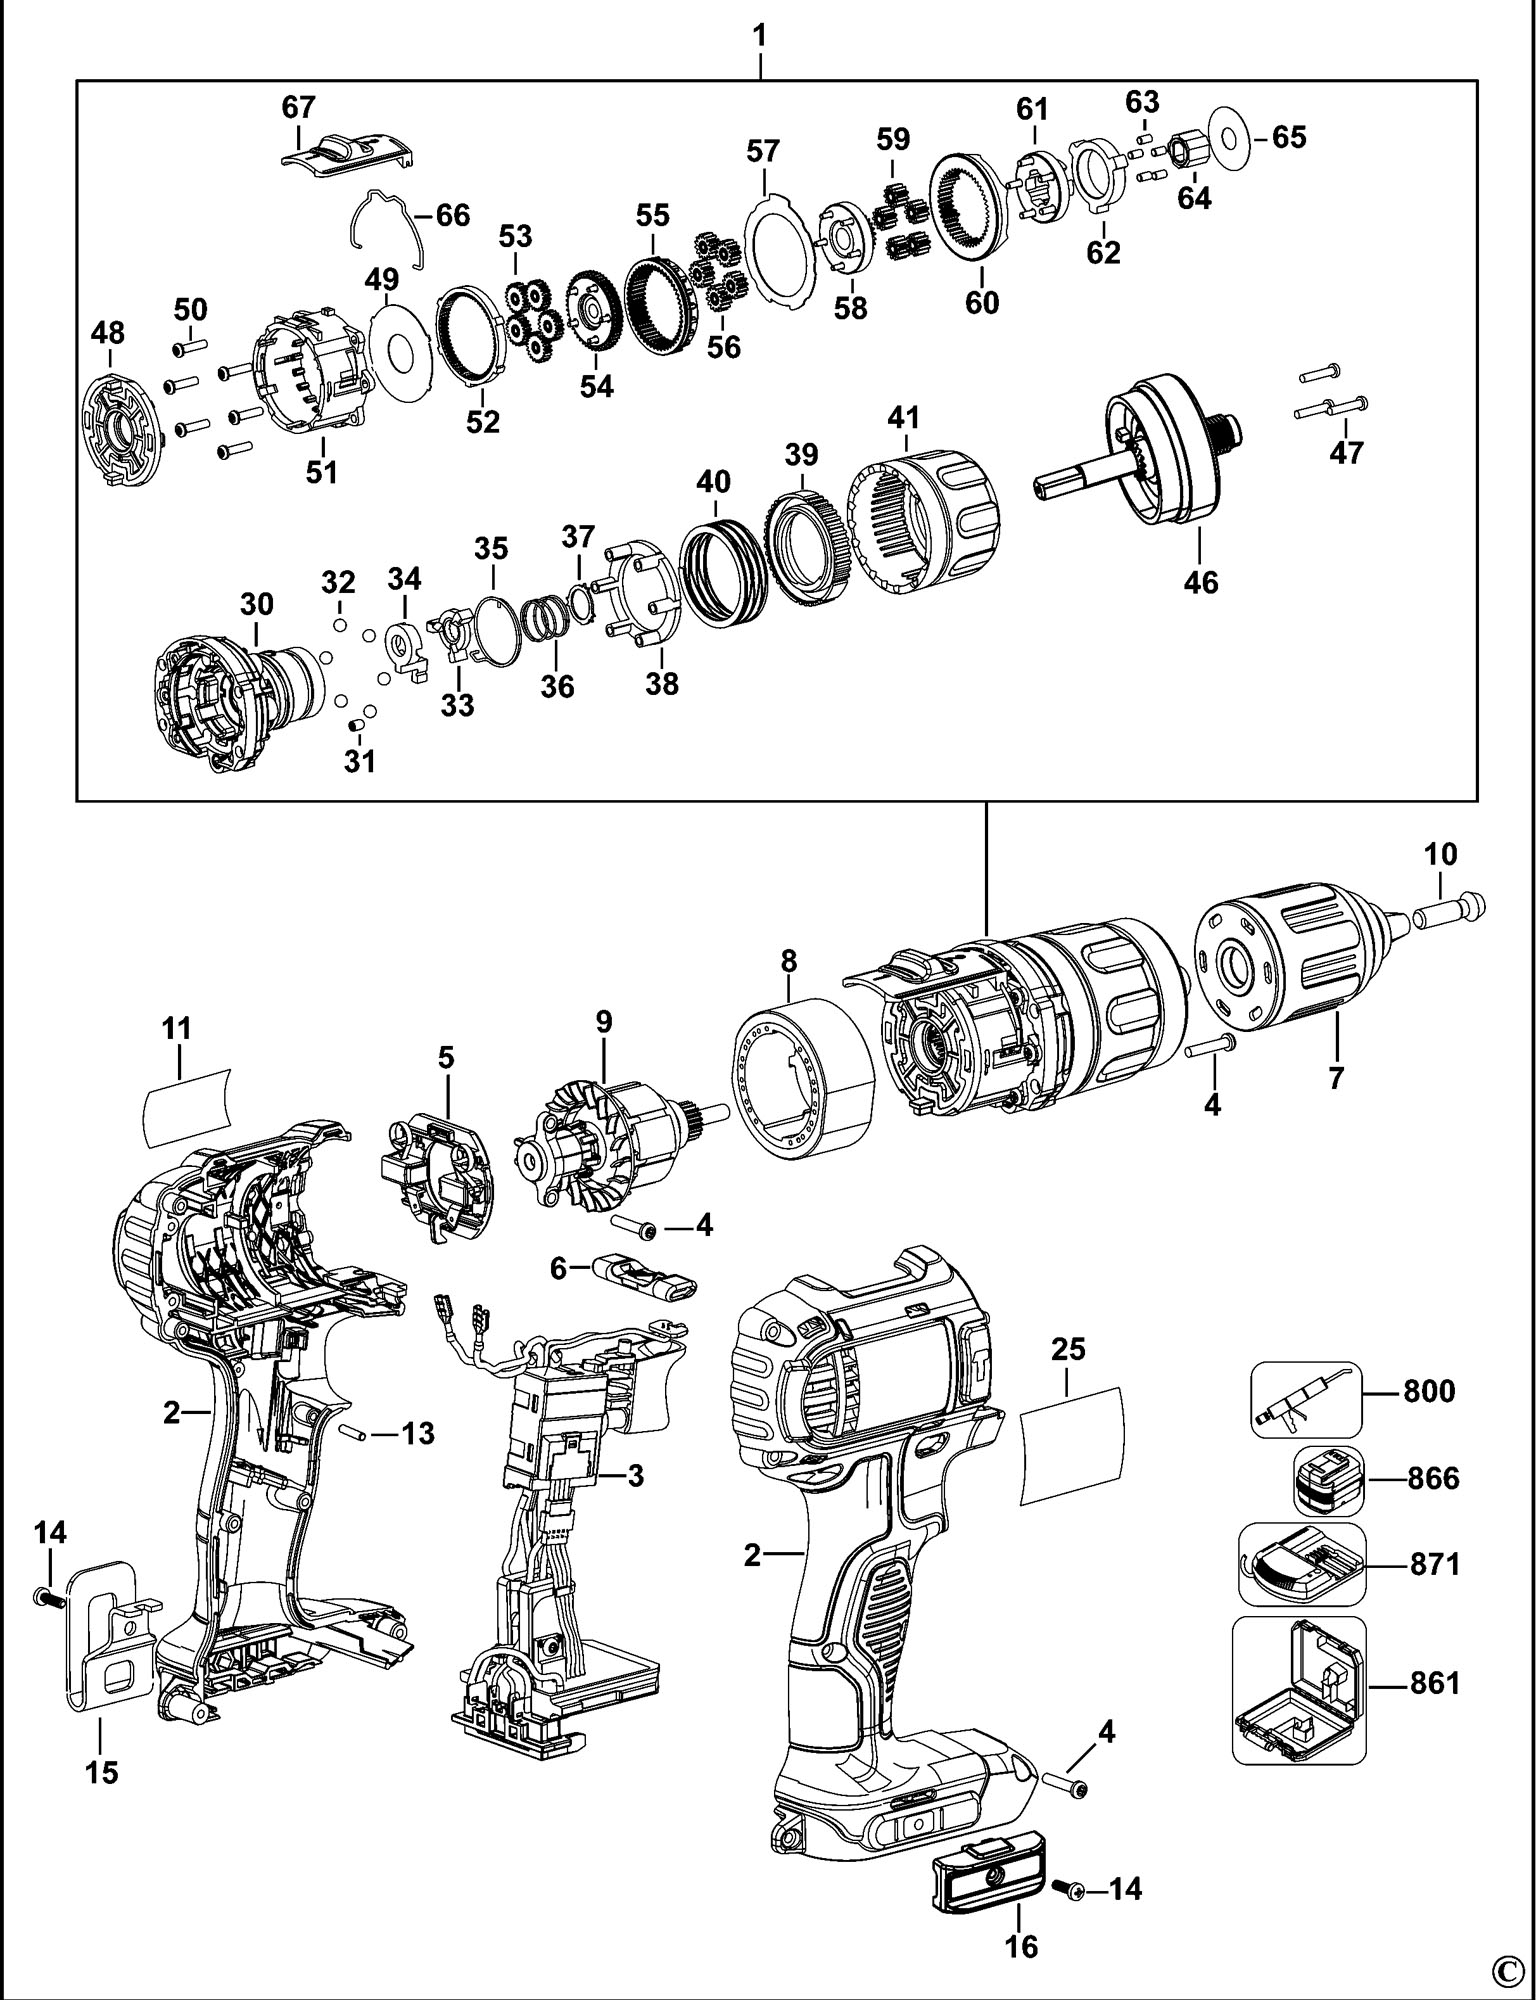 power tool handle design schematics  power  get free image